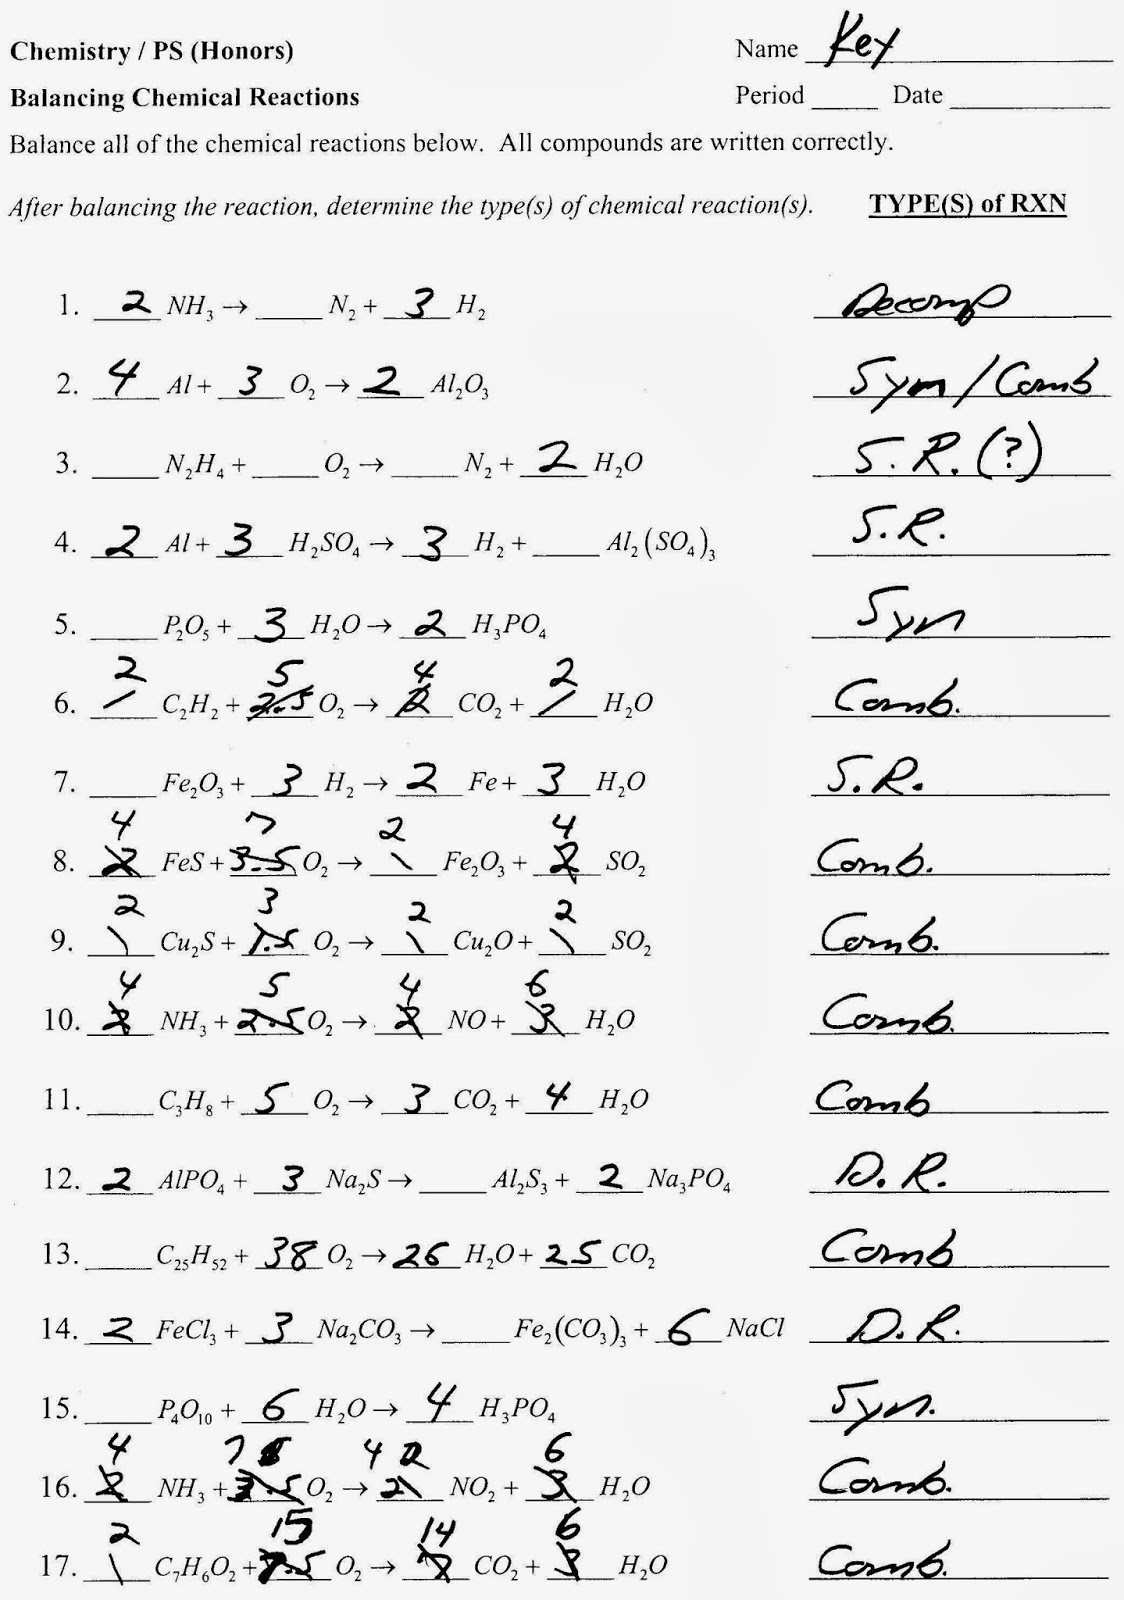 Weirdmailus  Personable Balancing Chemical Equations Worksheets Balancing Chemical  With Engaging Balancing Chemical Equations Worksheet Answer Key On Chemistry Double With Archaic Capitalization Worksheets Grade  Also Super Teacher Worksheets Context Clues In Addition Colours Worksheets For Kindergarten And Number Sequence Worksheets Ks As Well As Prepositions Free Worksheets Additionally Pyramids Of Biomass Worksheet From Letstalkhiphopus With Weirdmailus  Engaging Balancing Chemical Equations Worksheets Balancing Chemical  With Archaic Balancing Chemical Equations Worksheet Answer Key On Chemistry Double And Personable Capitalization Worksheets Grade  Also Super Teacher Worksheets Context Clues In Addition Colours Worksheets For Kindergarten From Letstalkhiphopus